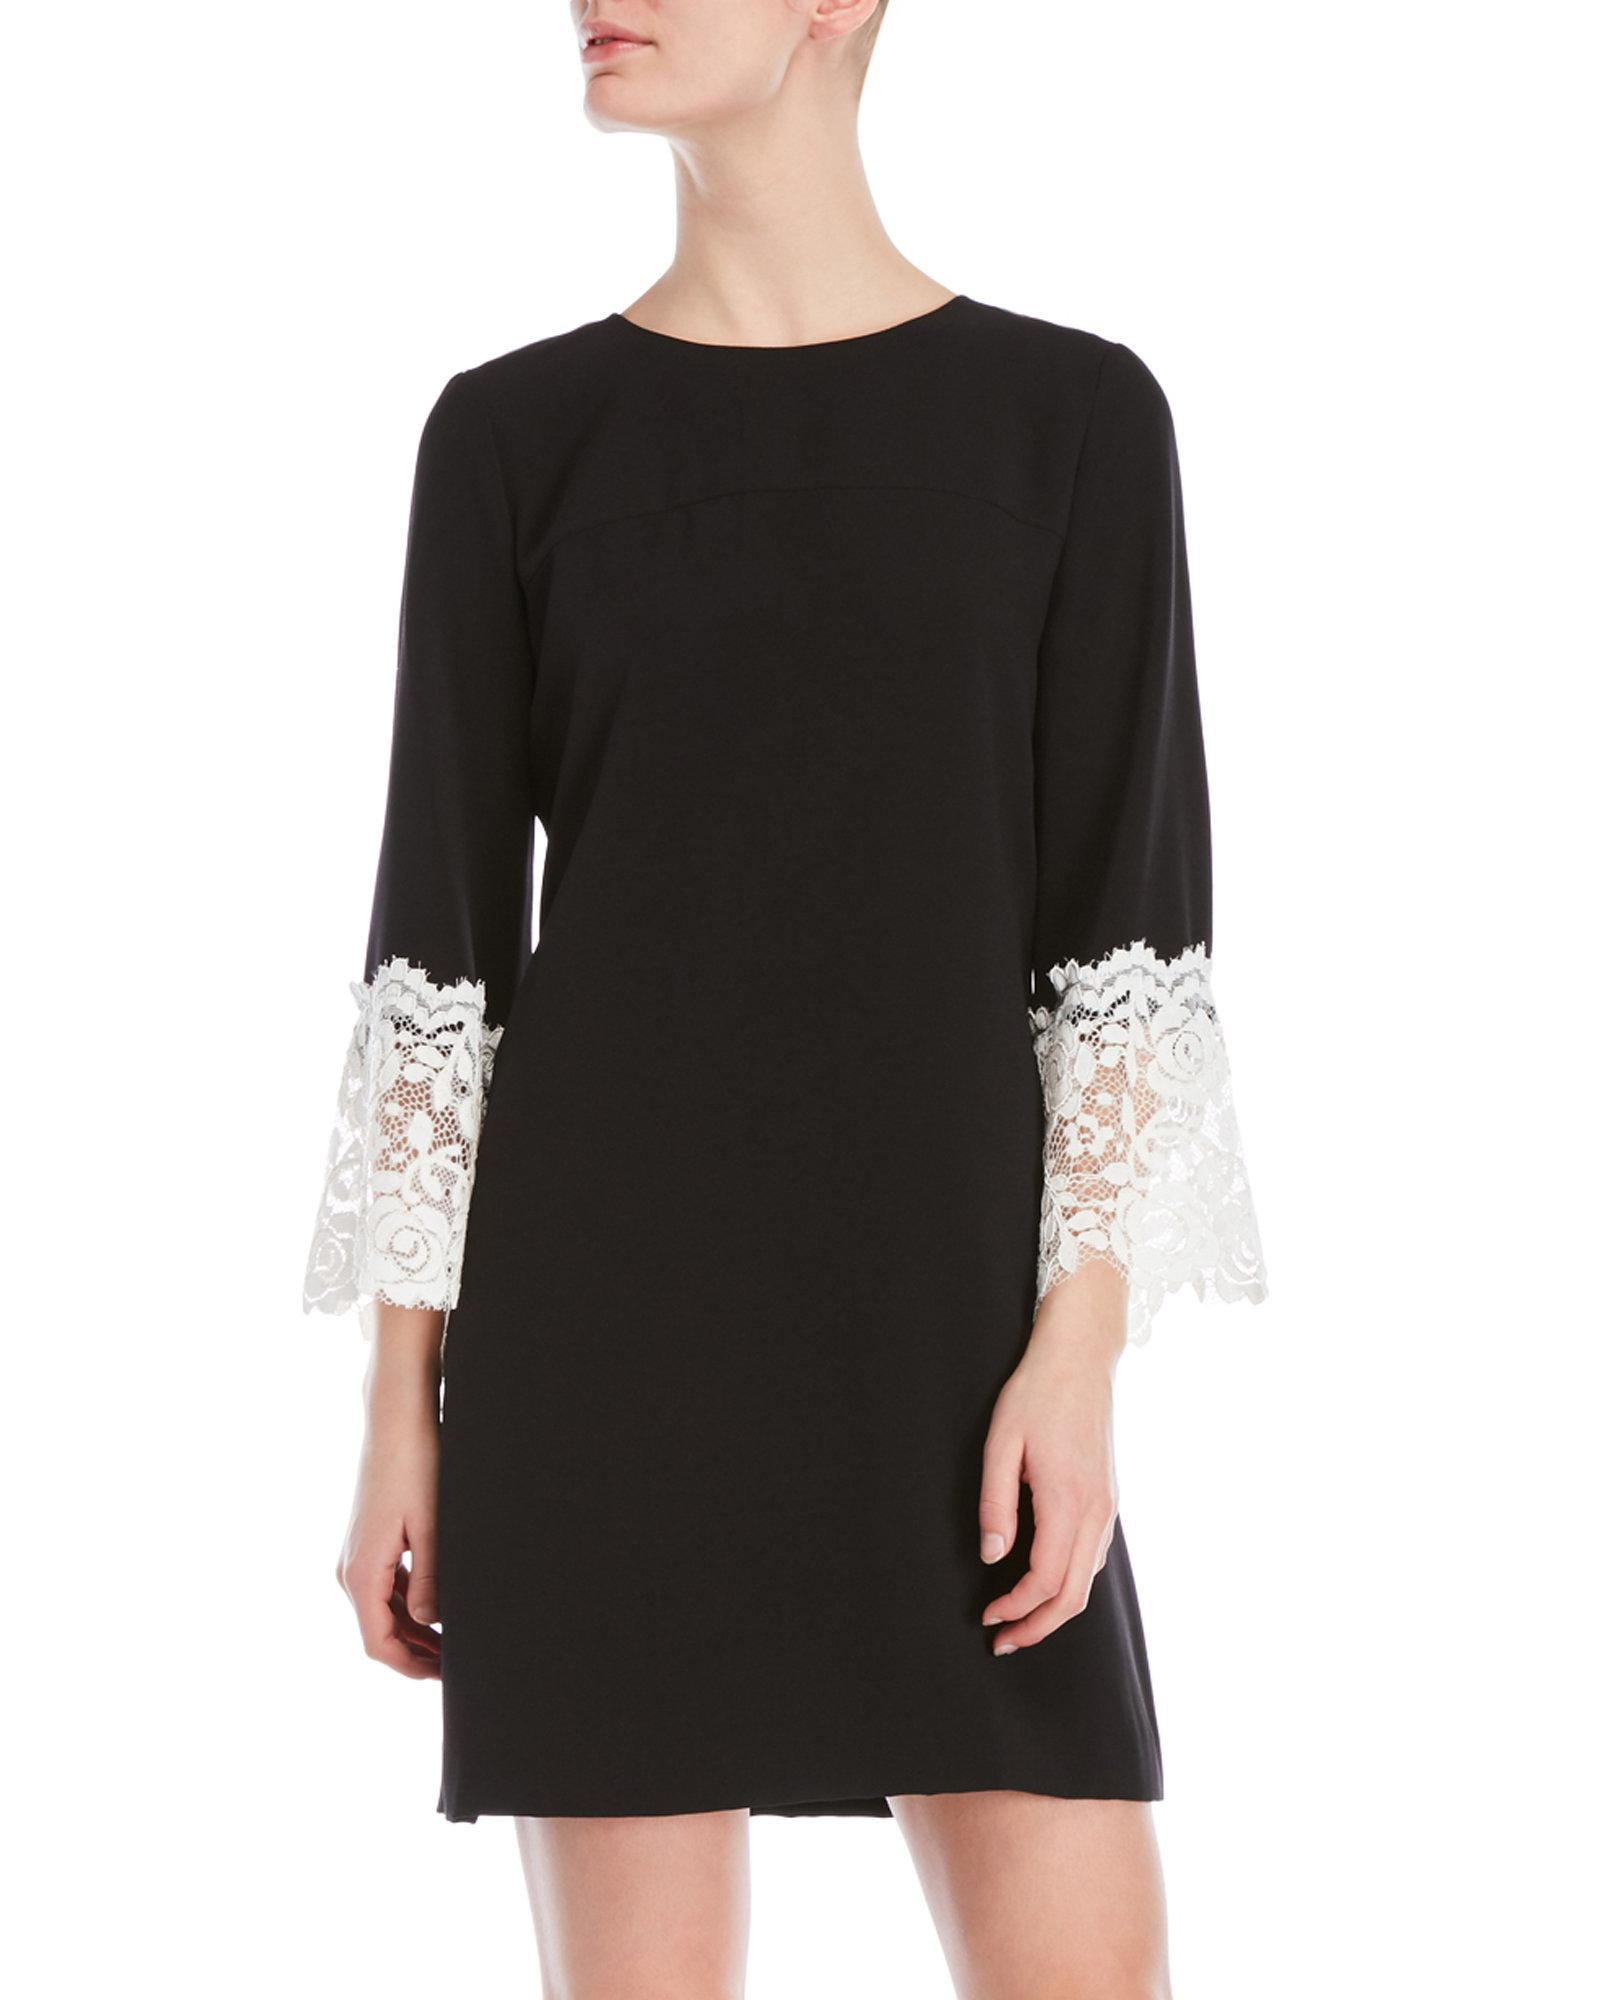 Crepe Lace Bell Sleeve Dress